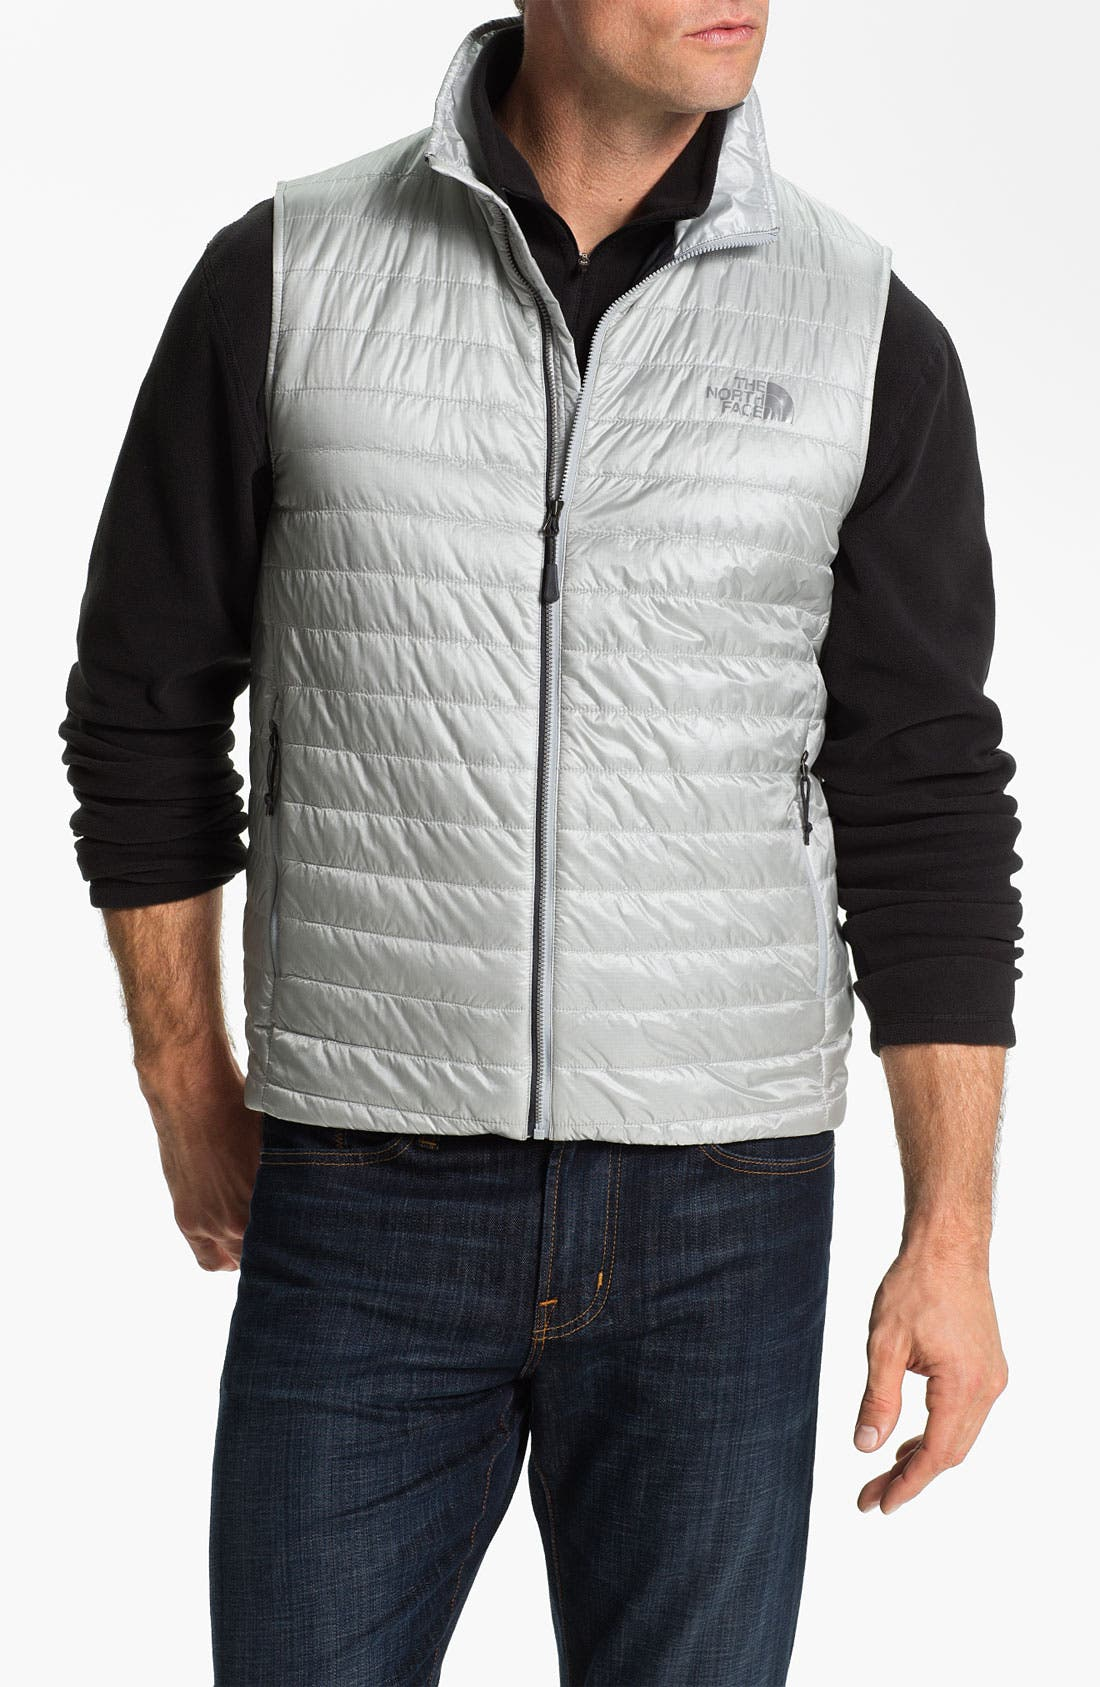 Main Image - The North Face 'Blaze' Vest